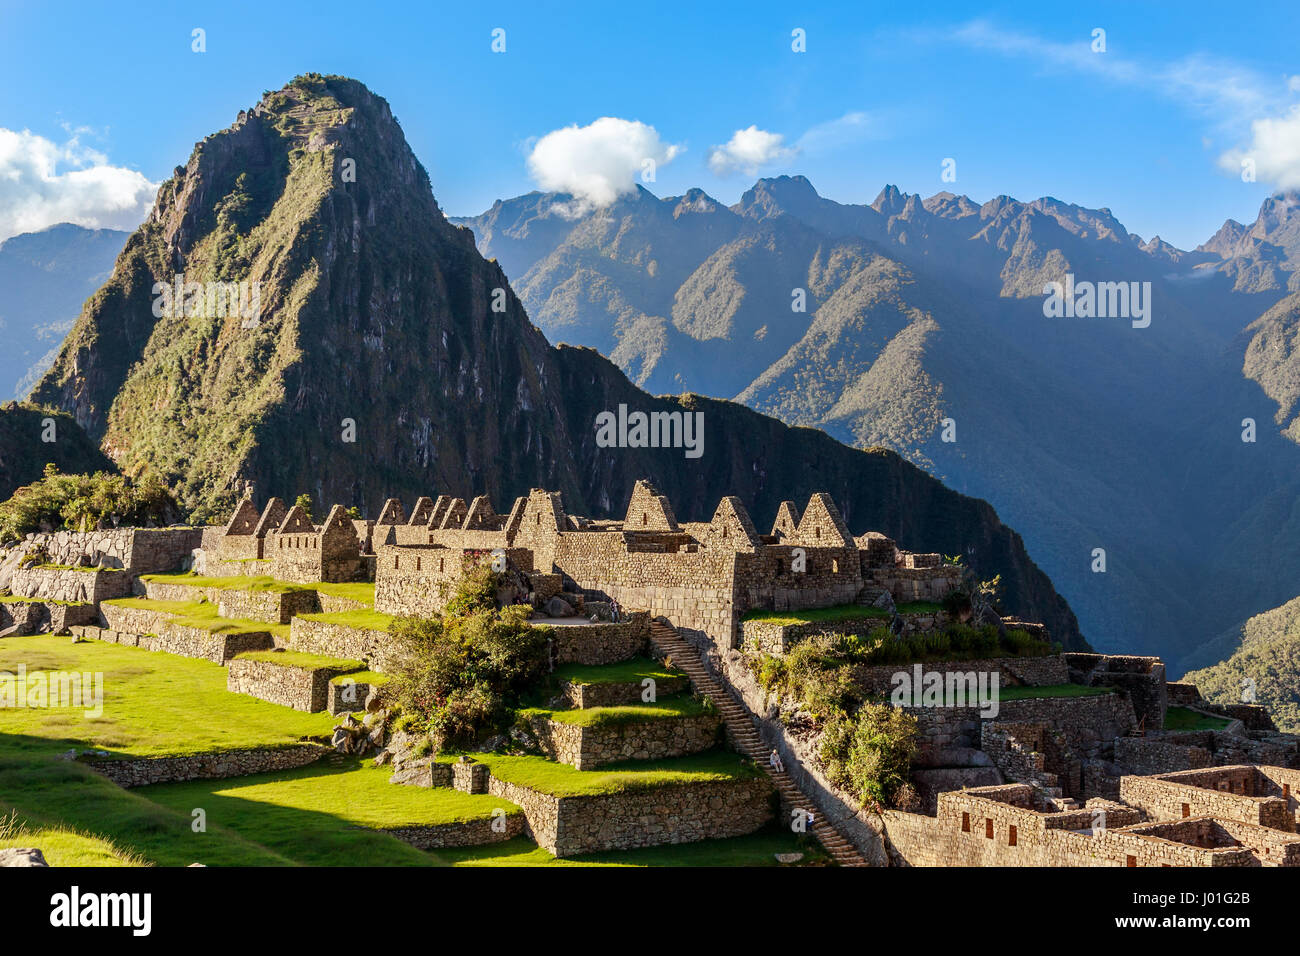 View from the top to old Inca ruins and Wayna Picchu, Machu Picchu, Urubamba provnce, Peru - Stock Image